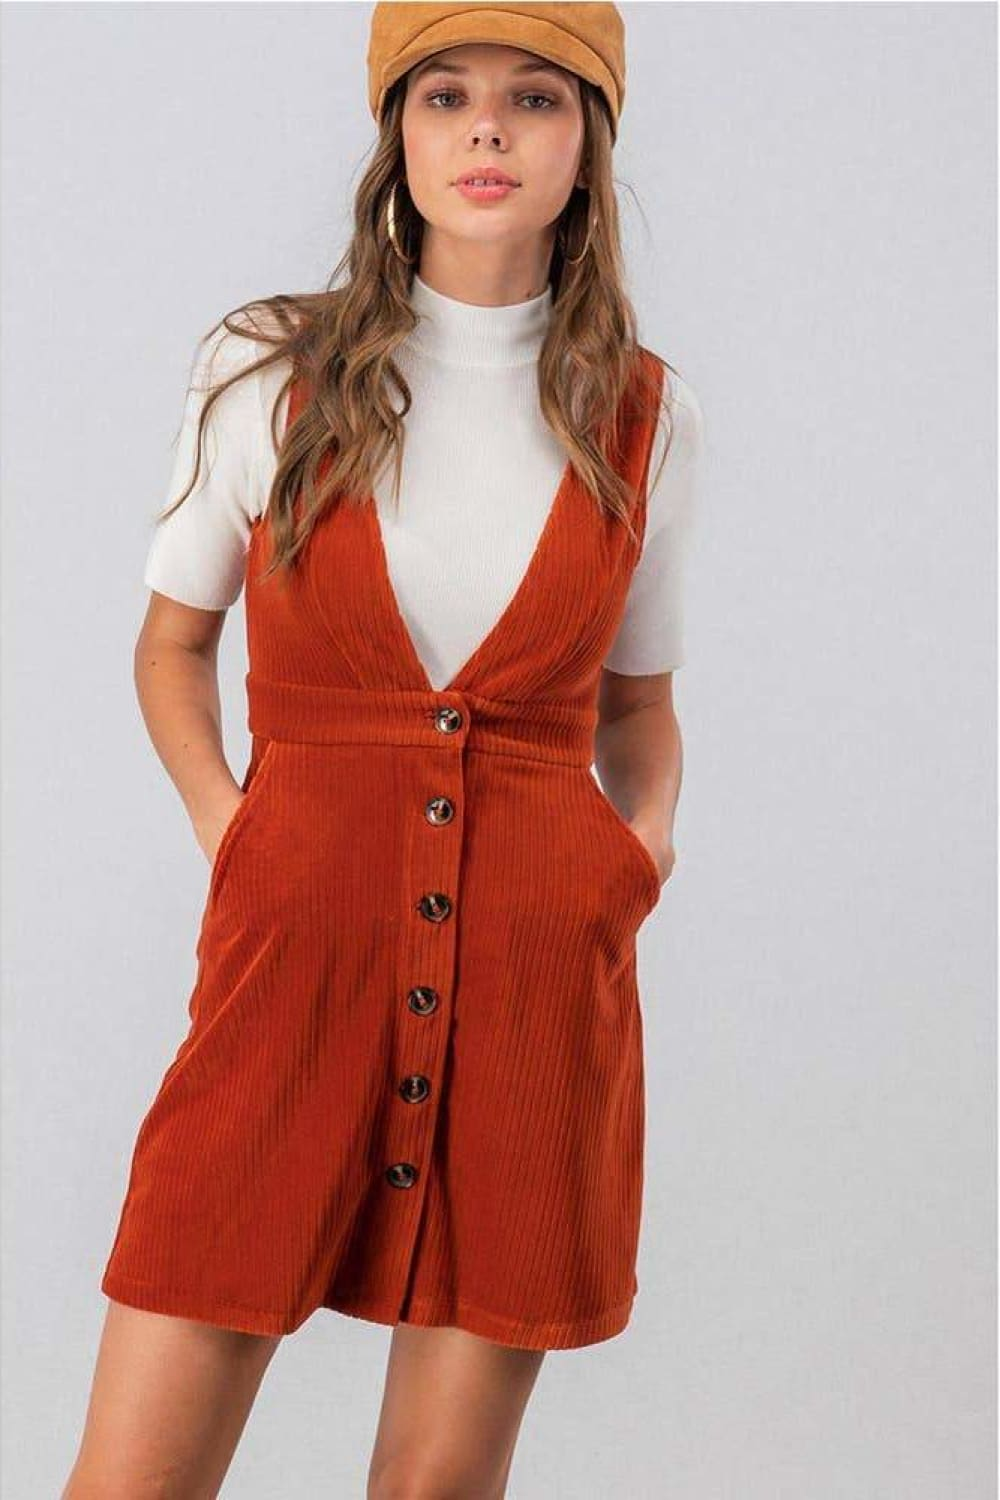 Khloe Corduroy Deep-V Button Overall Dress - Dresses - Evan & Jane